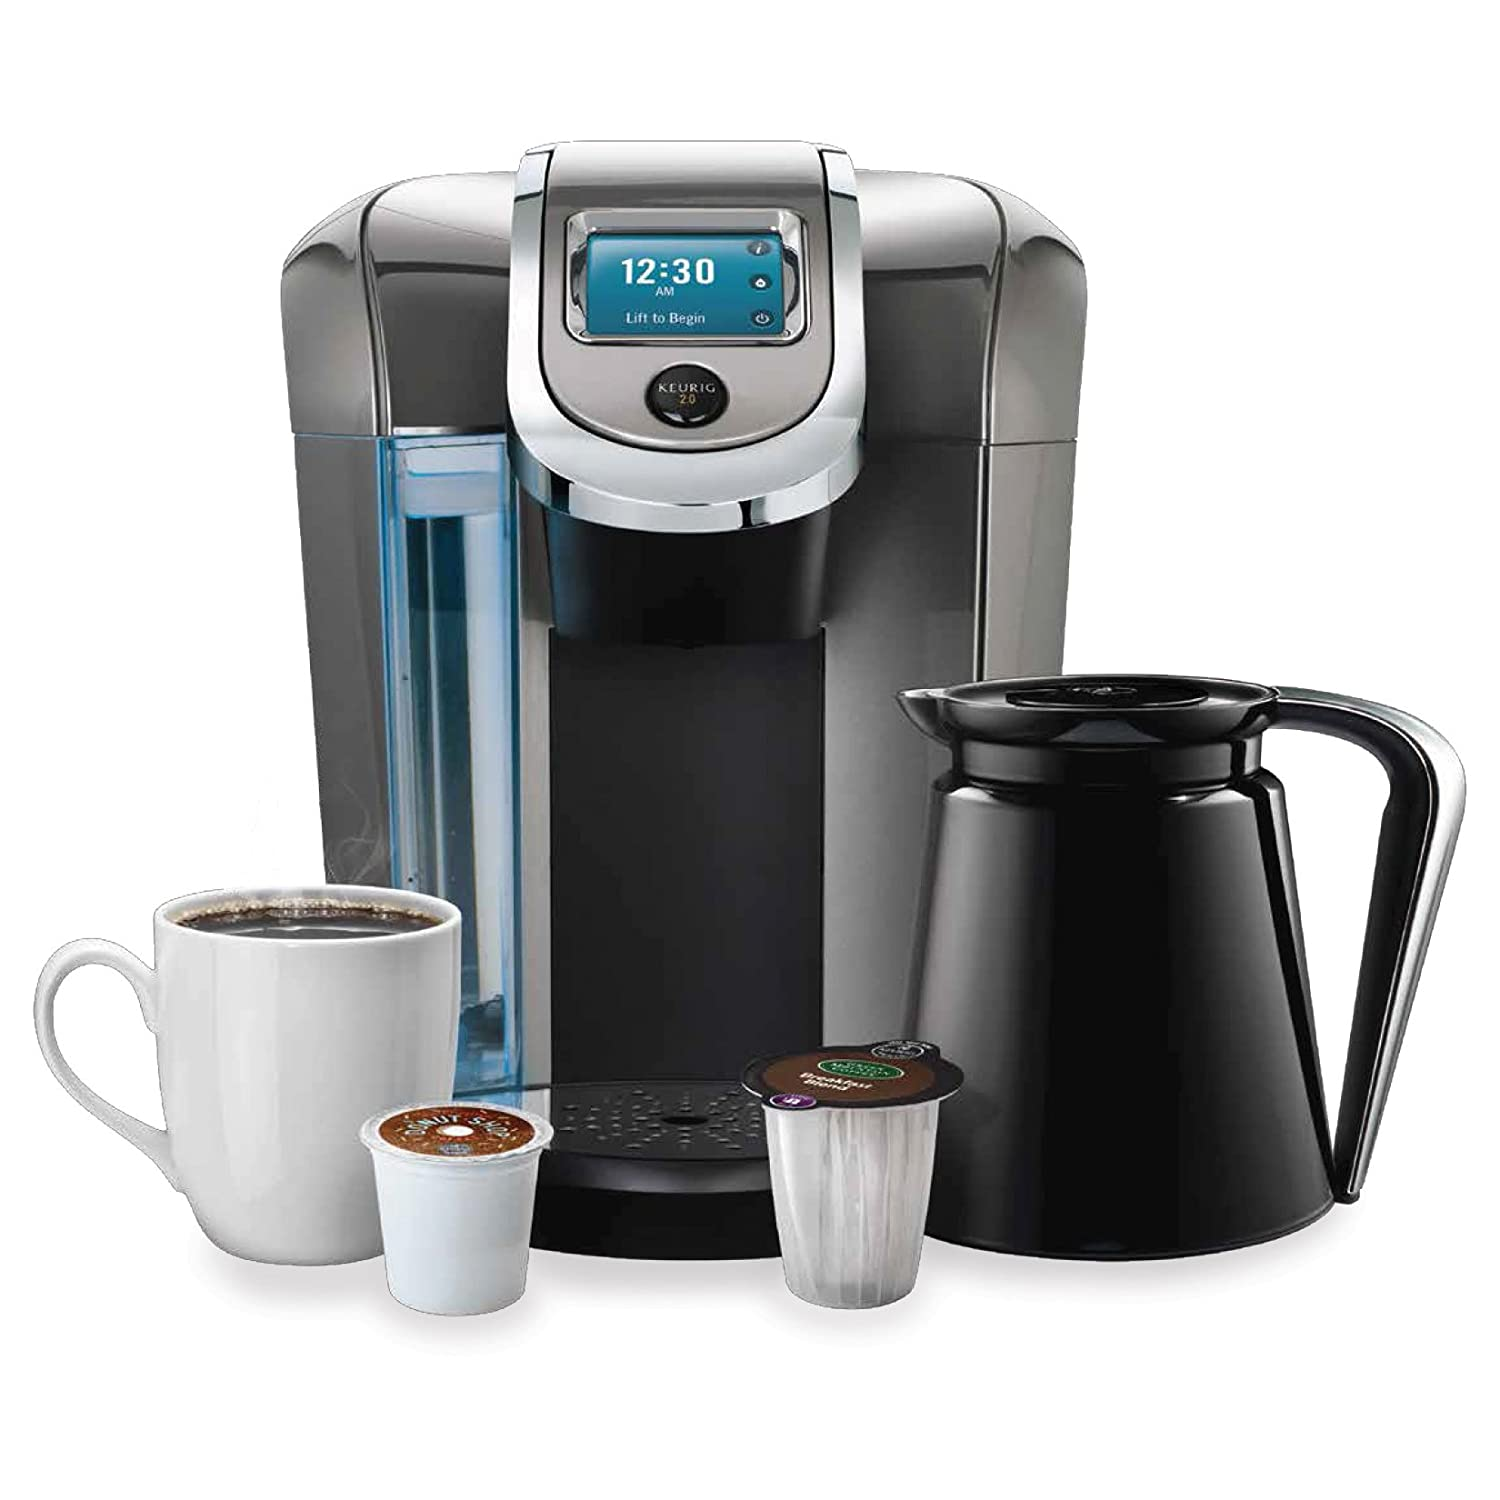 K Cup Coffee Maker Ratings : Keurig 2.0 Brewer Review